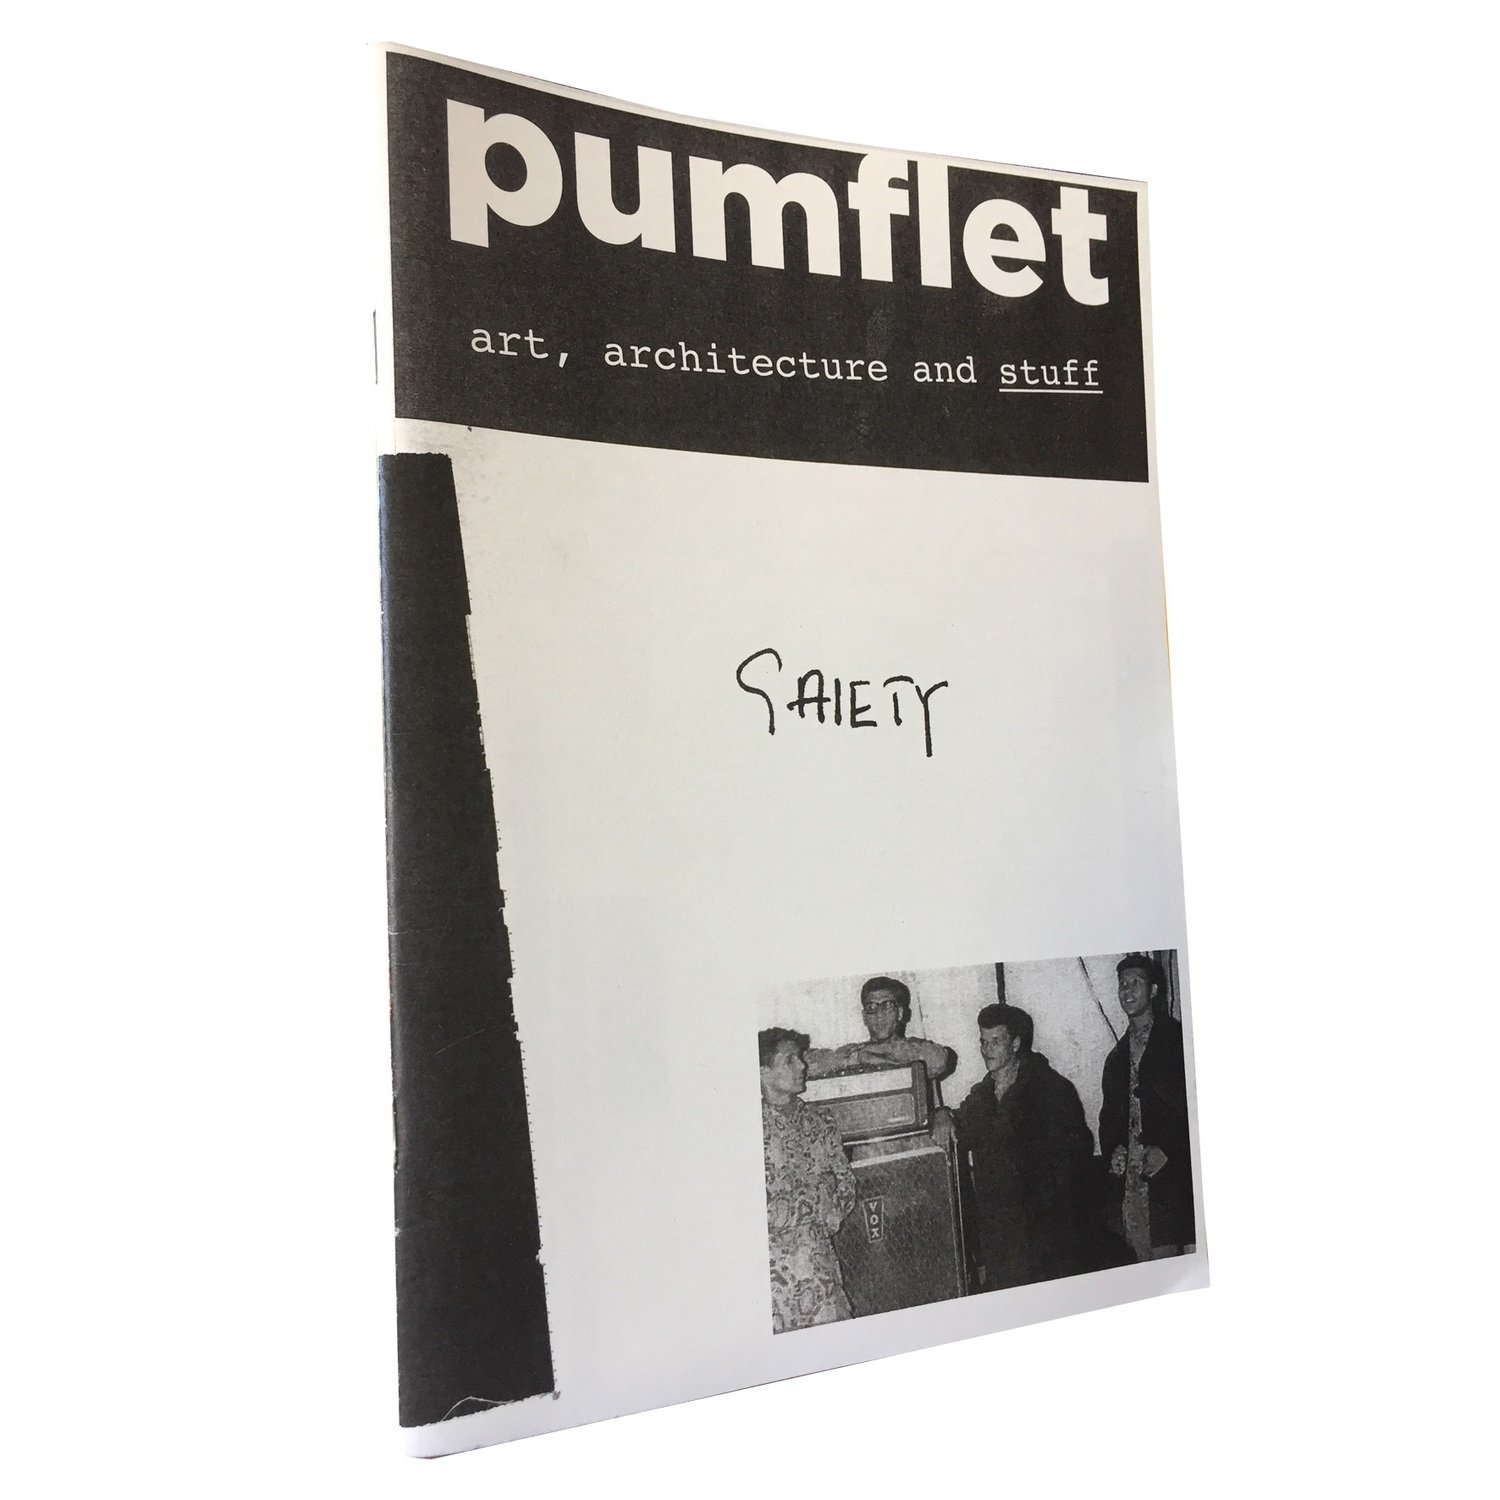 pumflet: art, architecture, and stuff - gaiety